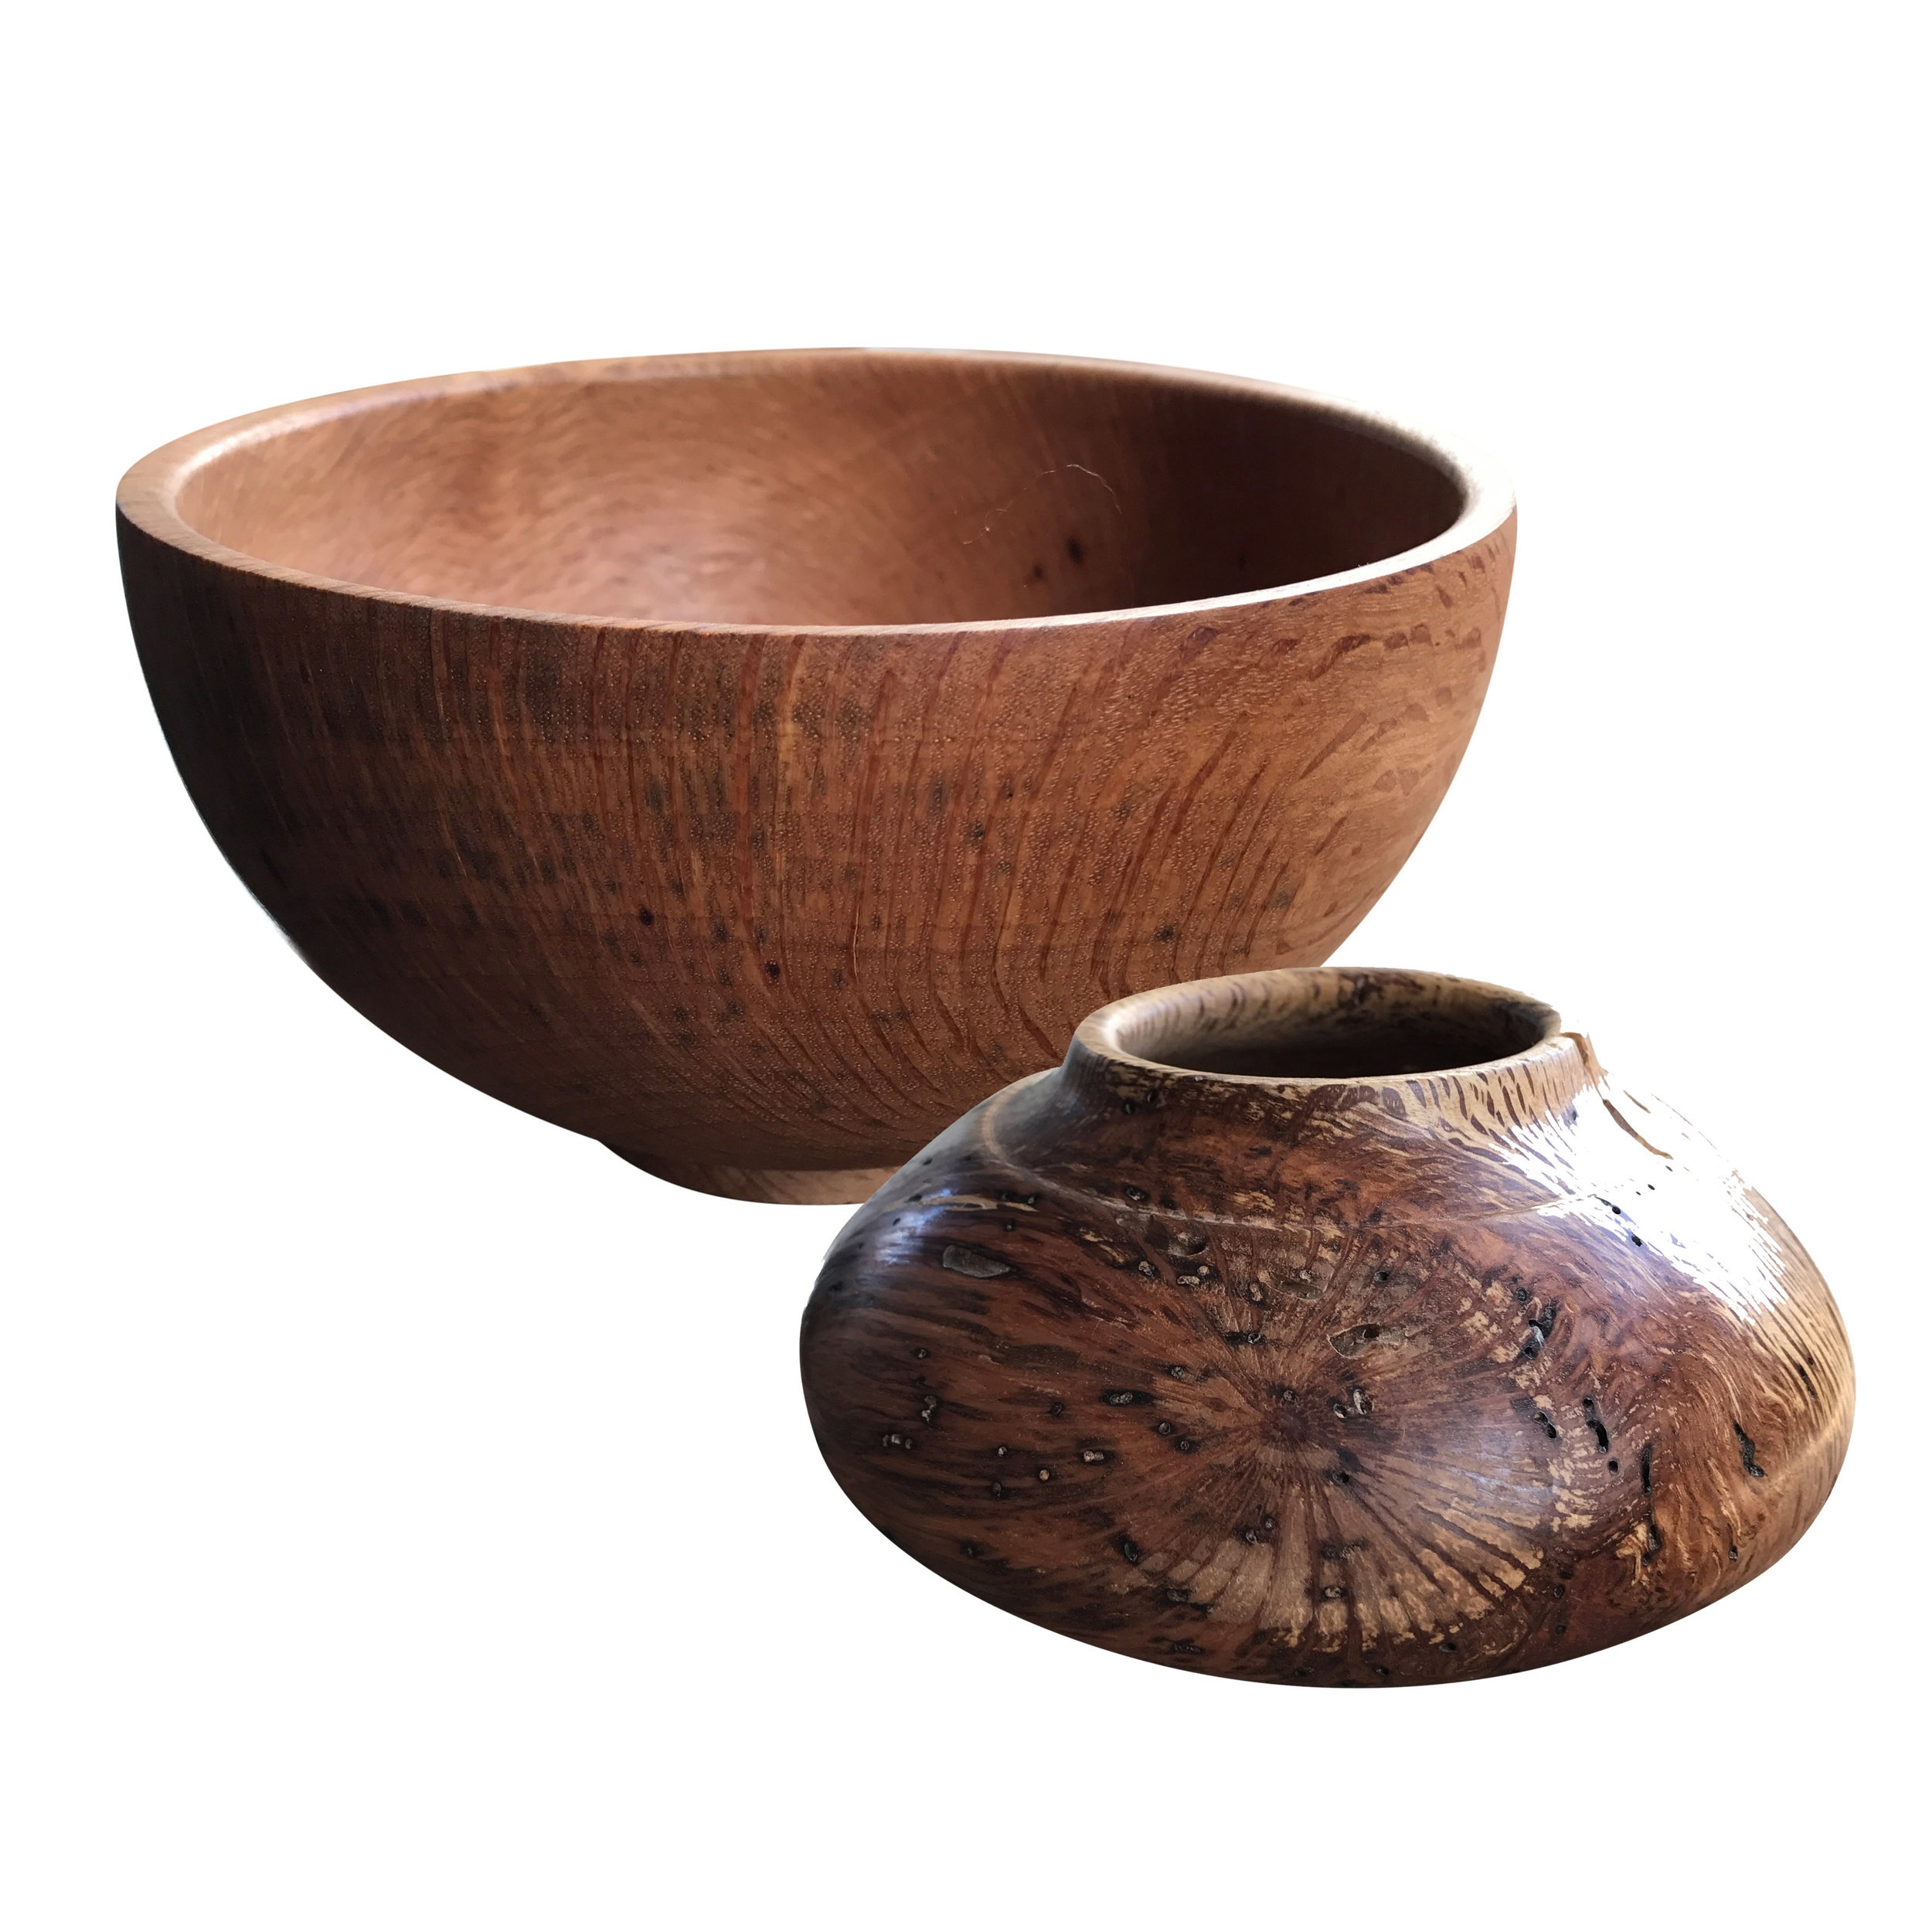 Terry Sharp Wood Bowls -